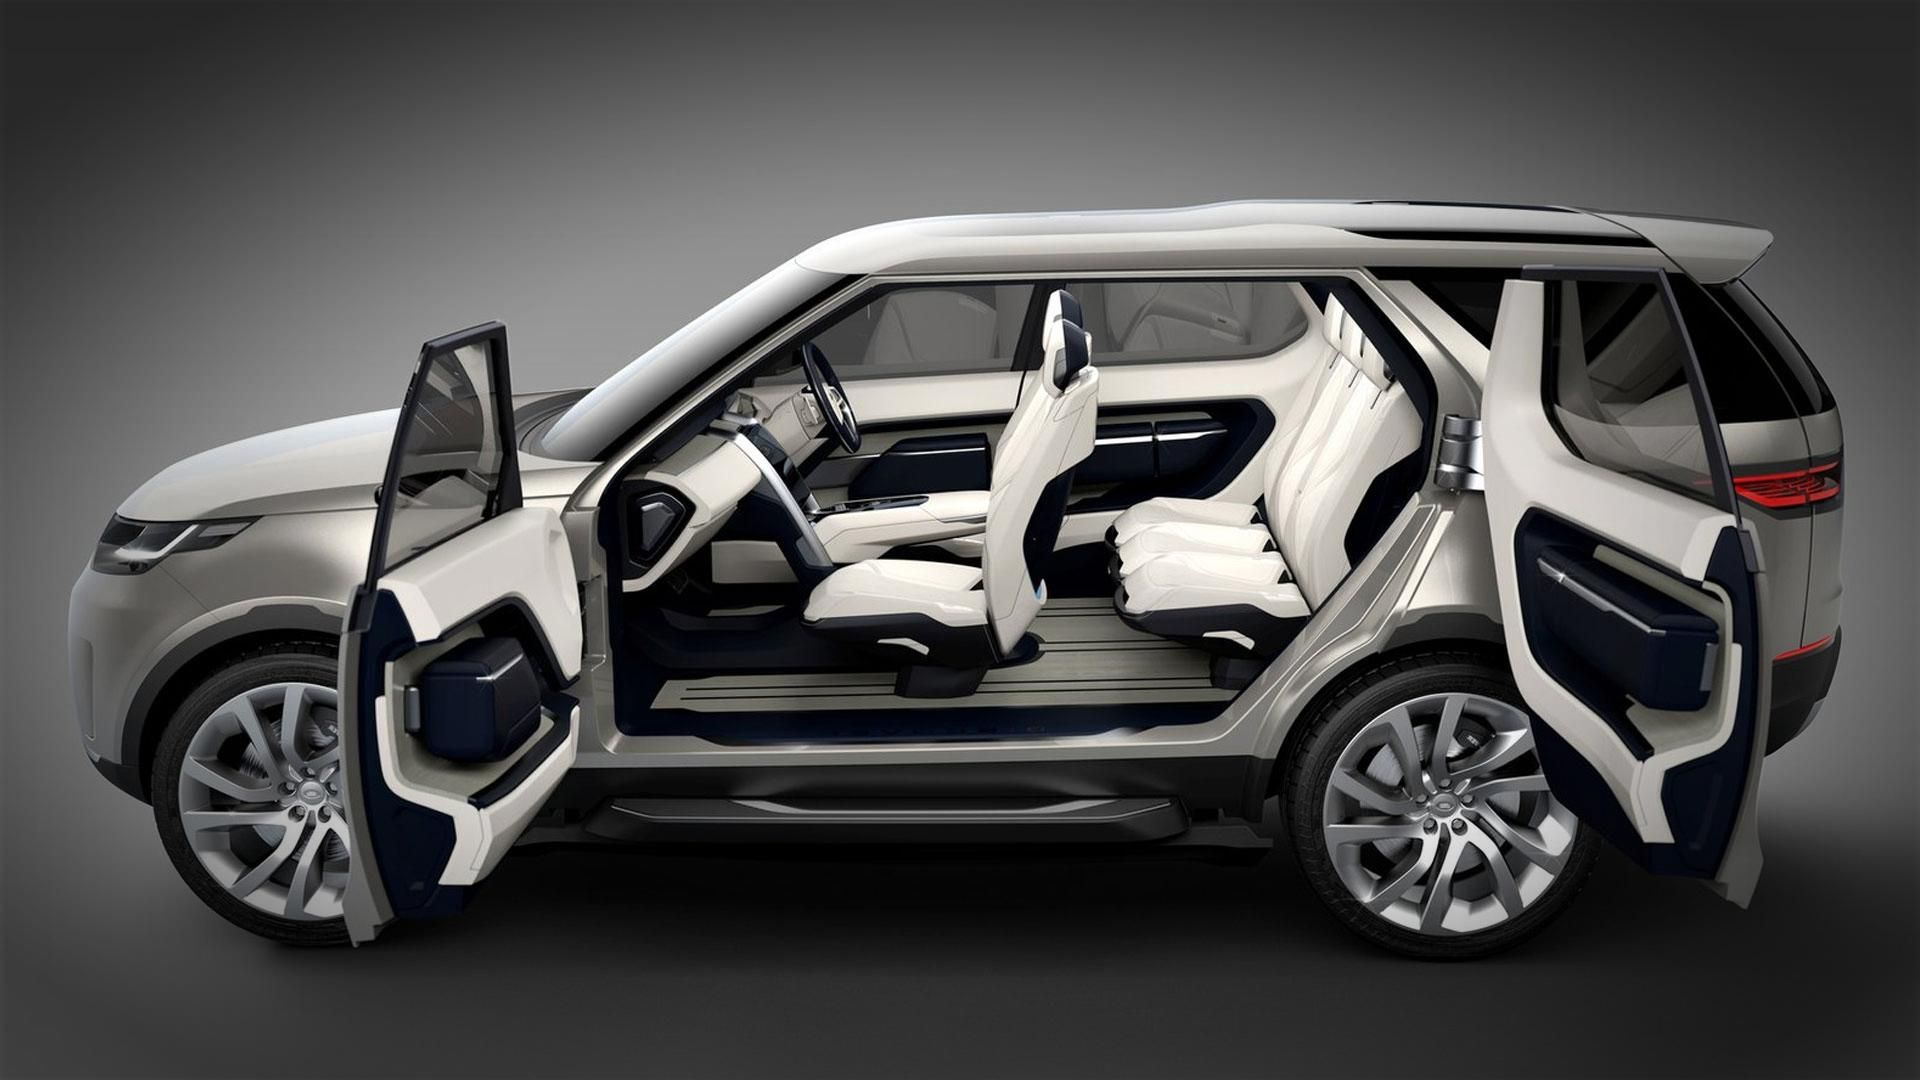 2014 Land Rover Discovery Vision Concept Luxury Suv 2014 Land